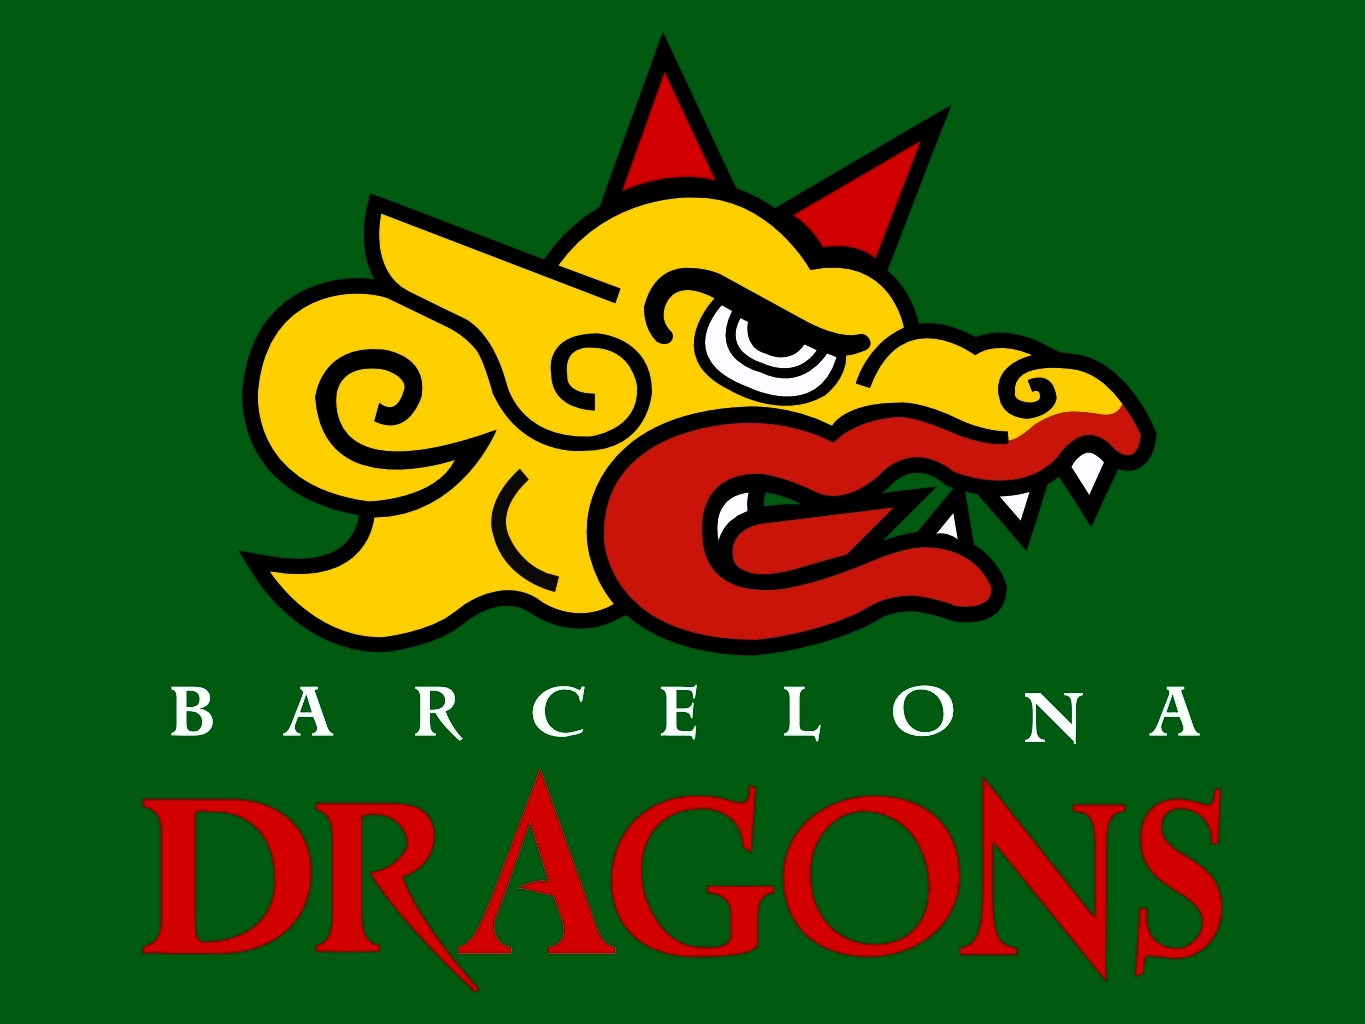 Barcelona Dragons Pro Sports Teams Wiki Fandom Powered